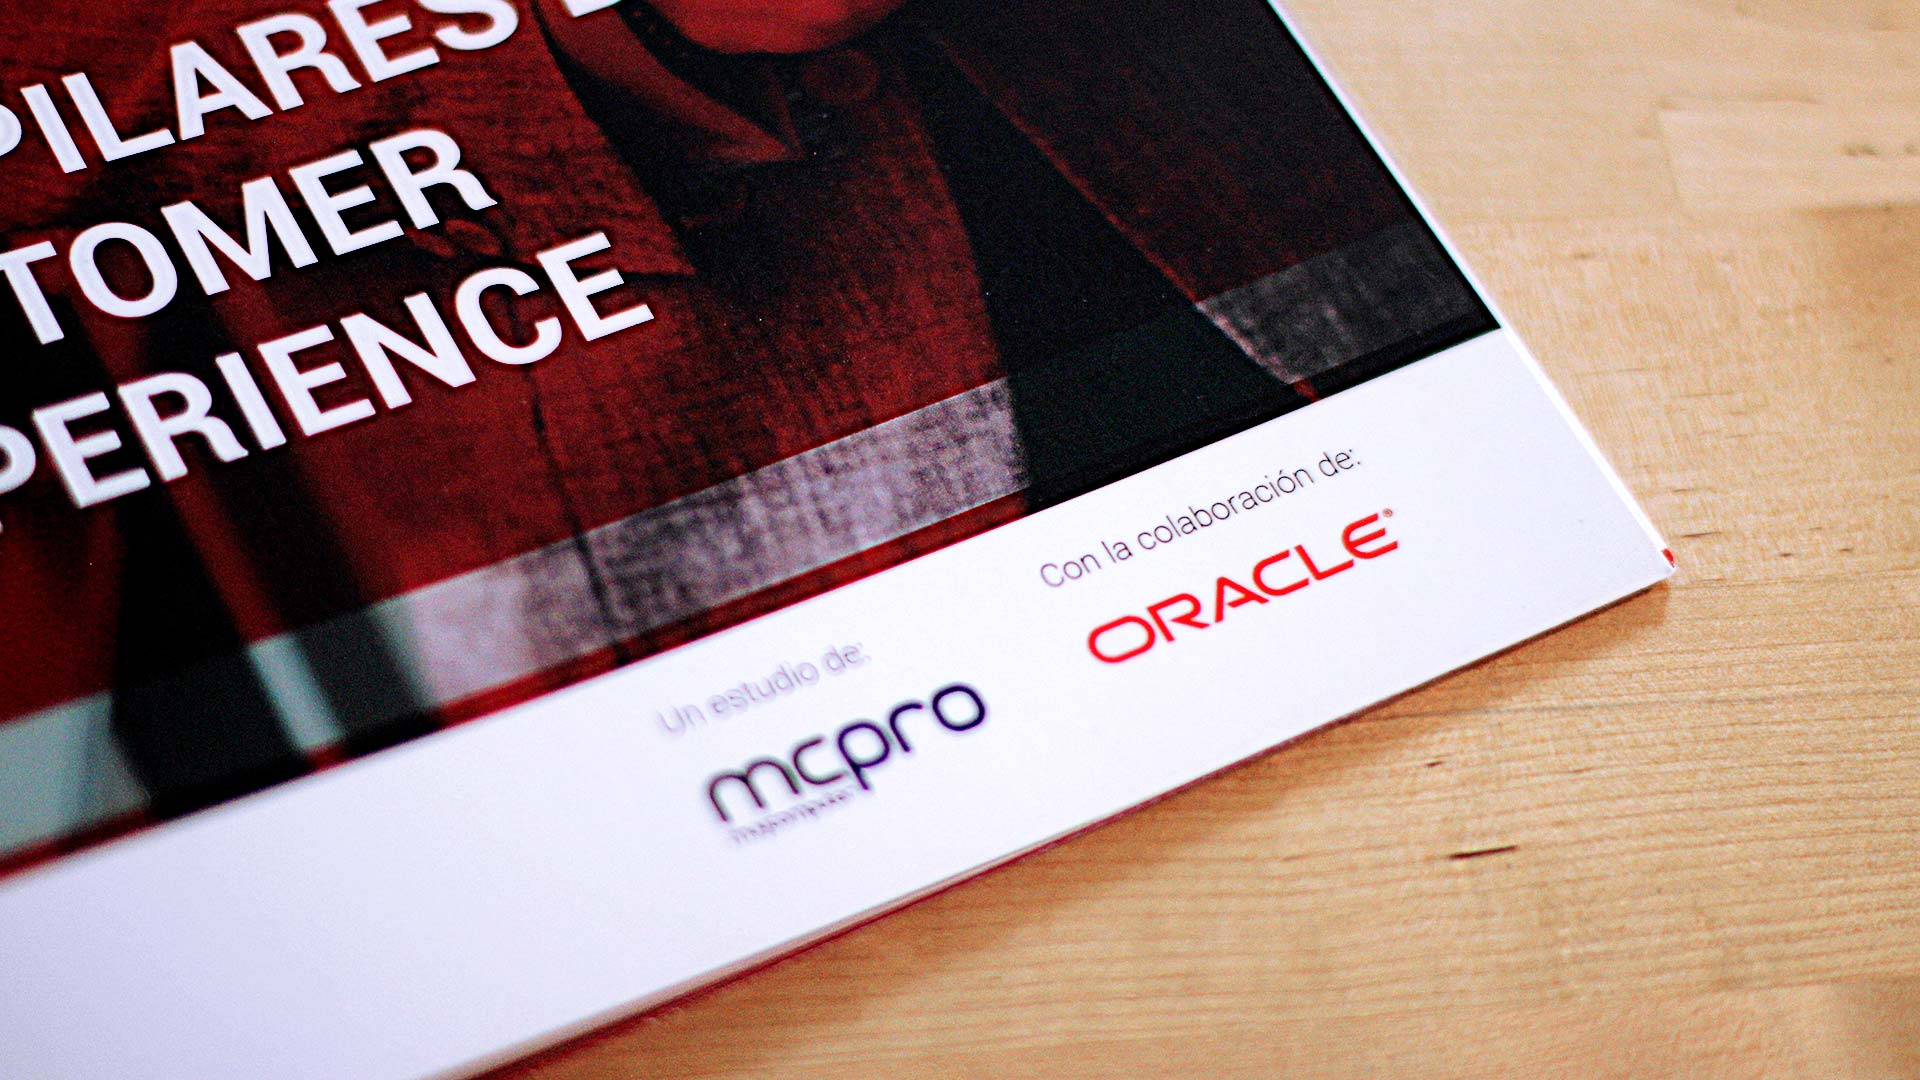 oracle-content-marketing-pilares-customer-experience-2017-15